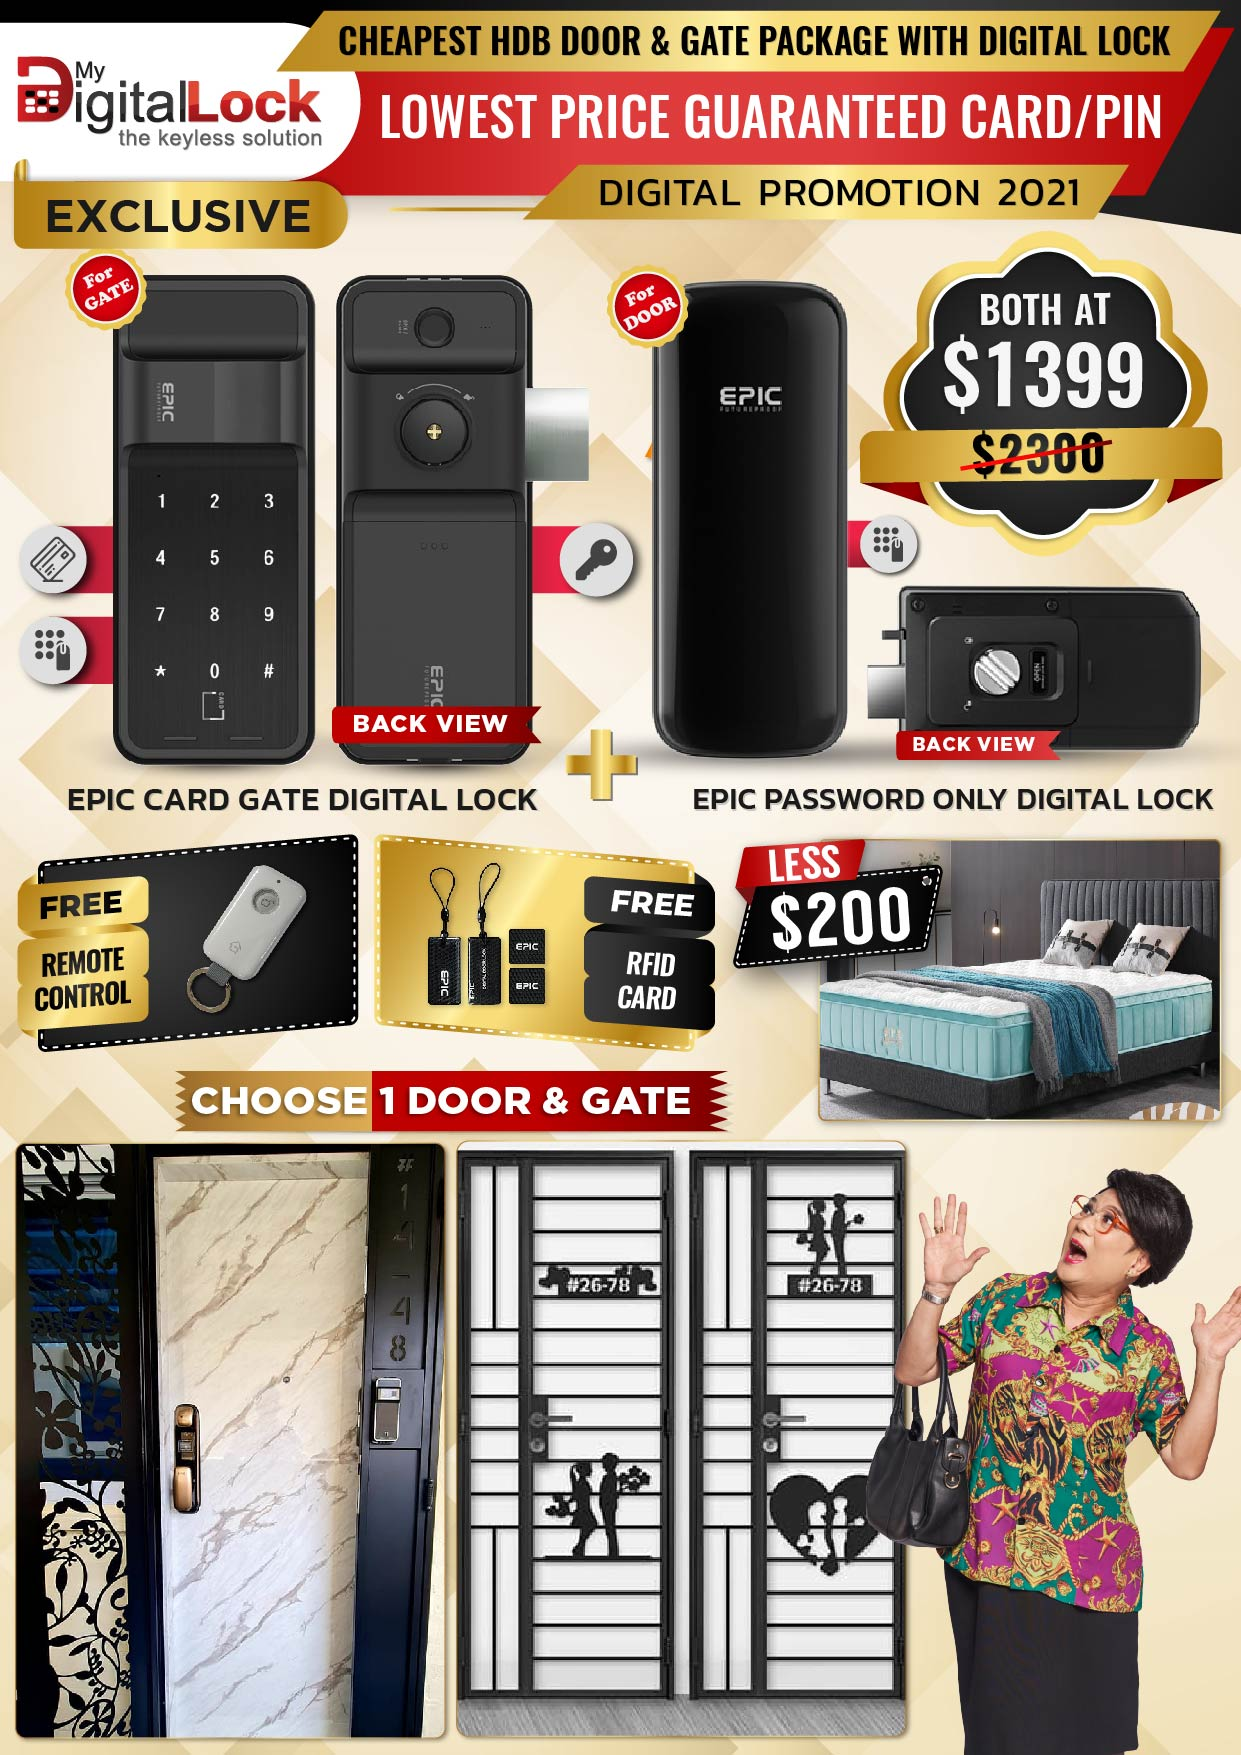 Cheapest HDB Door & Gate Package with Digital